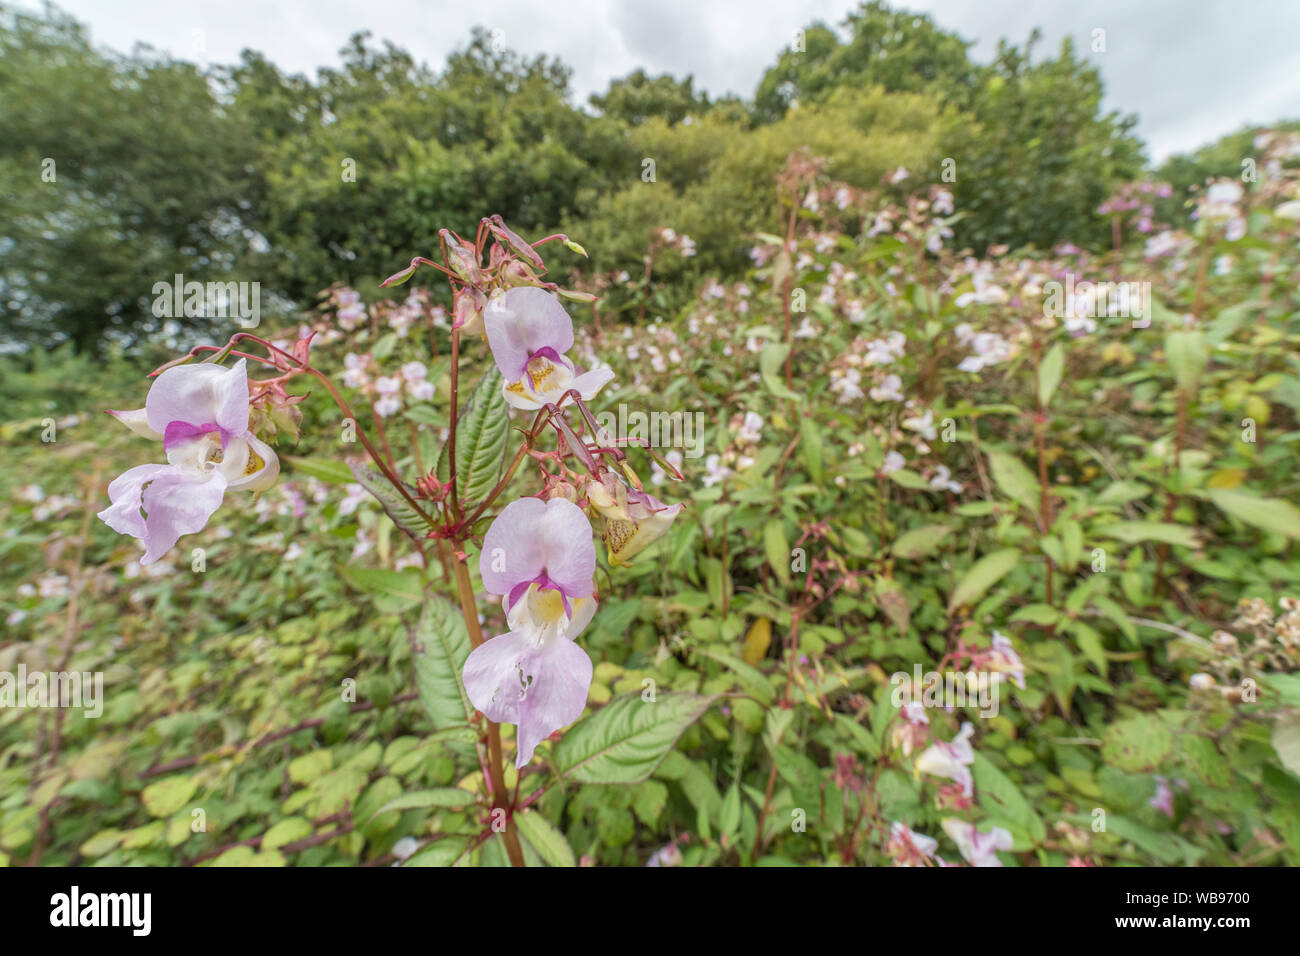 Flowers & upper leaves Himalayan Balsam / Impatiens glandulifera weed patch. Troublesome weed liking damp soils / ground, riversides, balsam invasion. Stock Photo